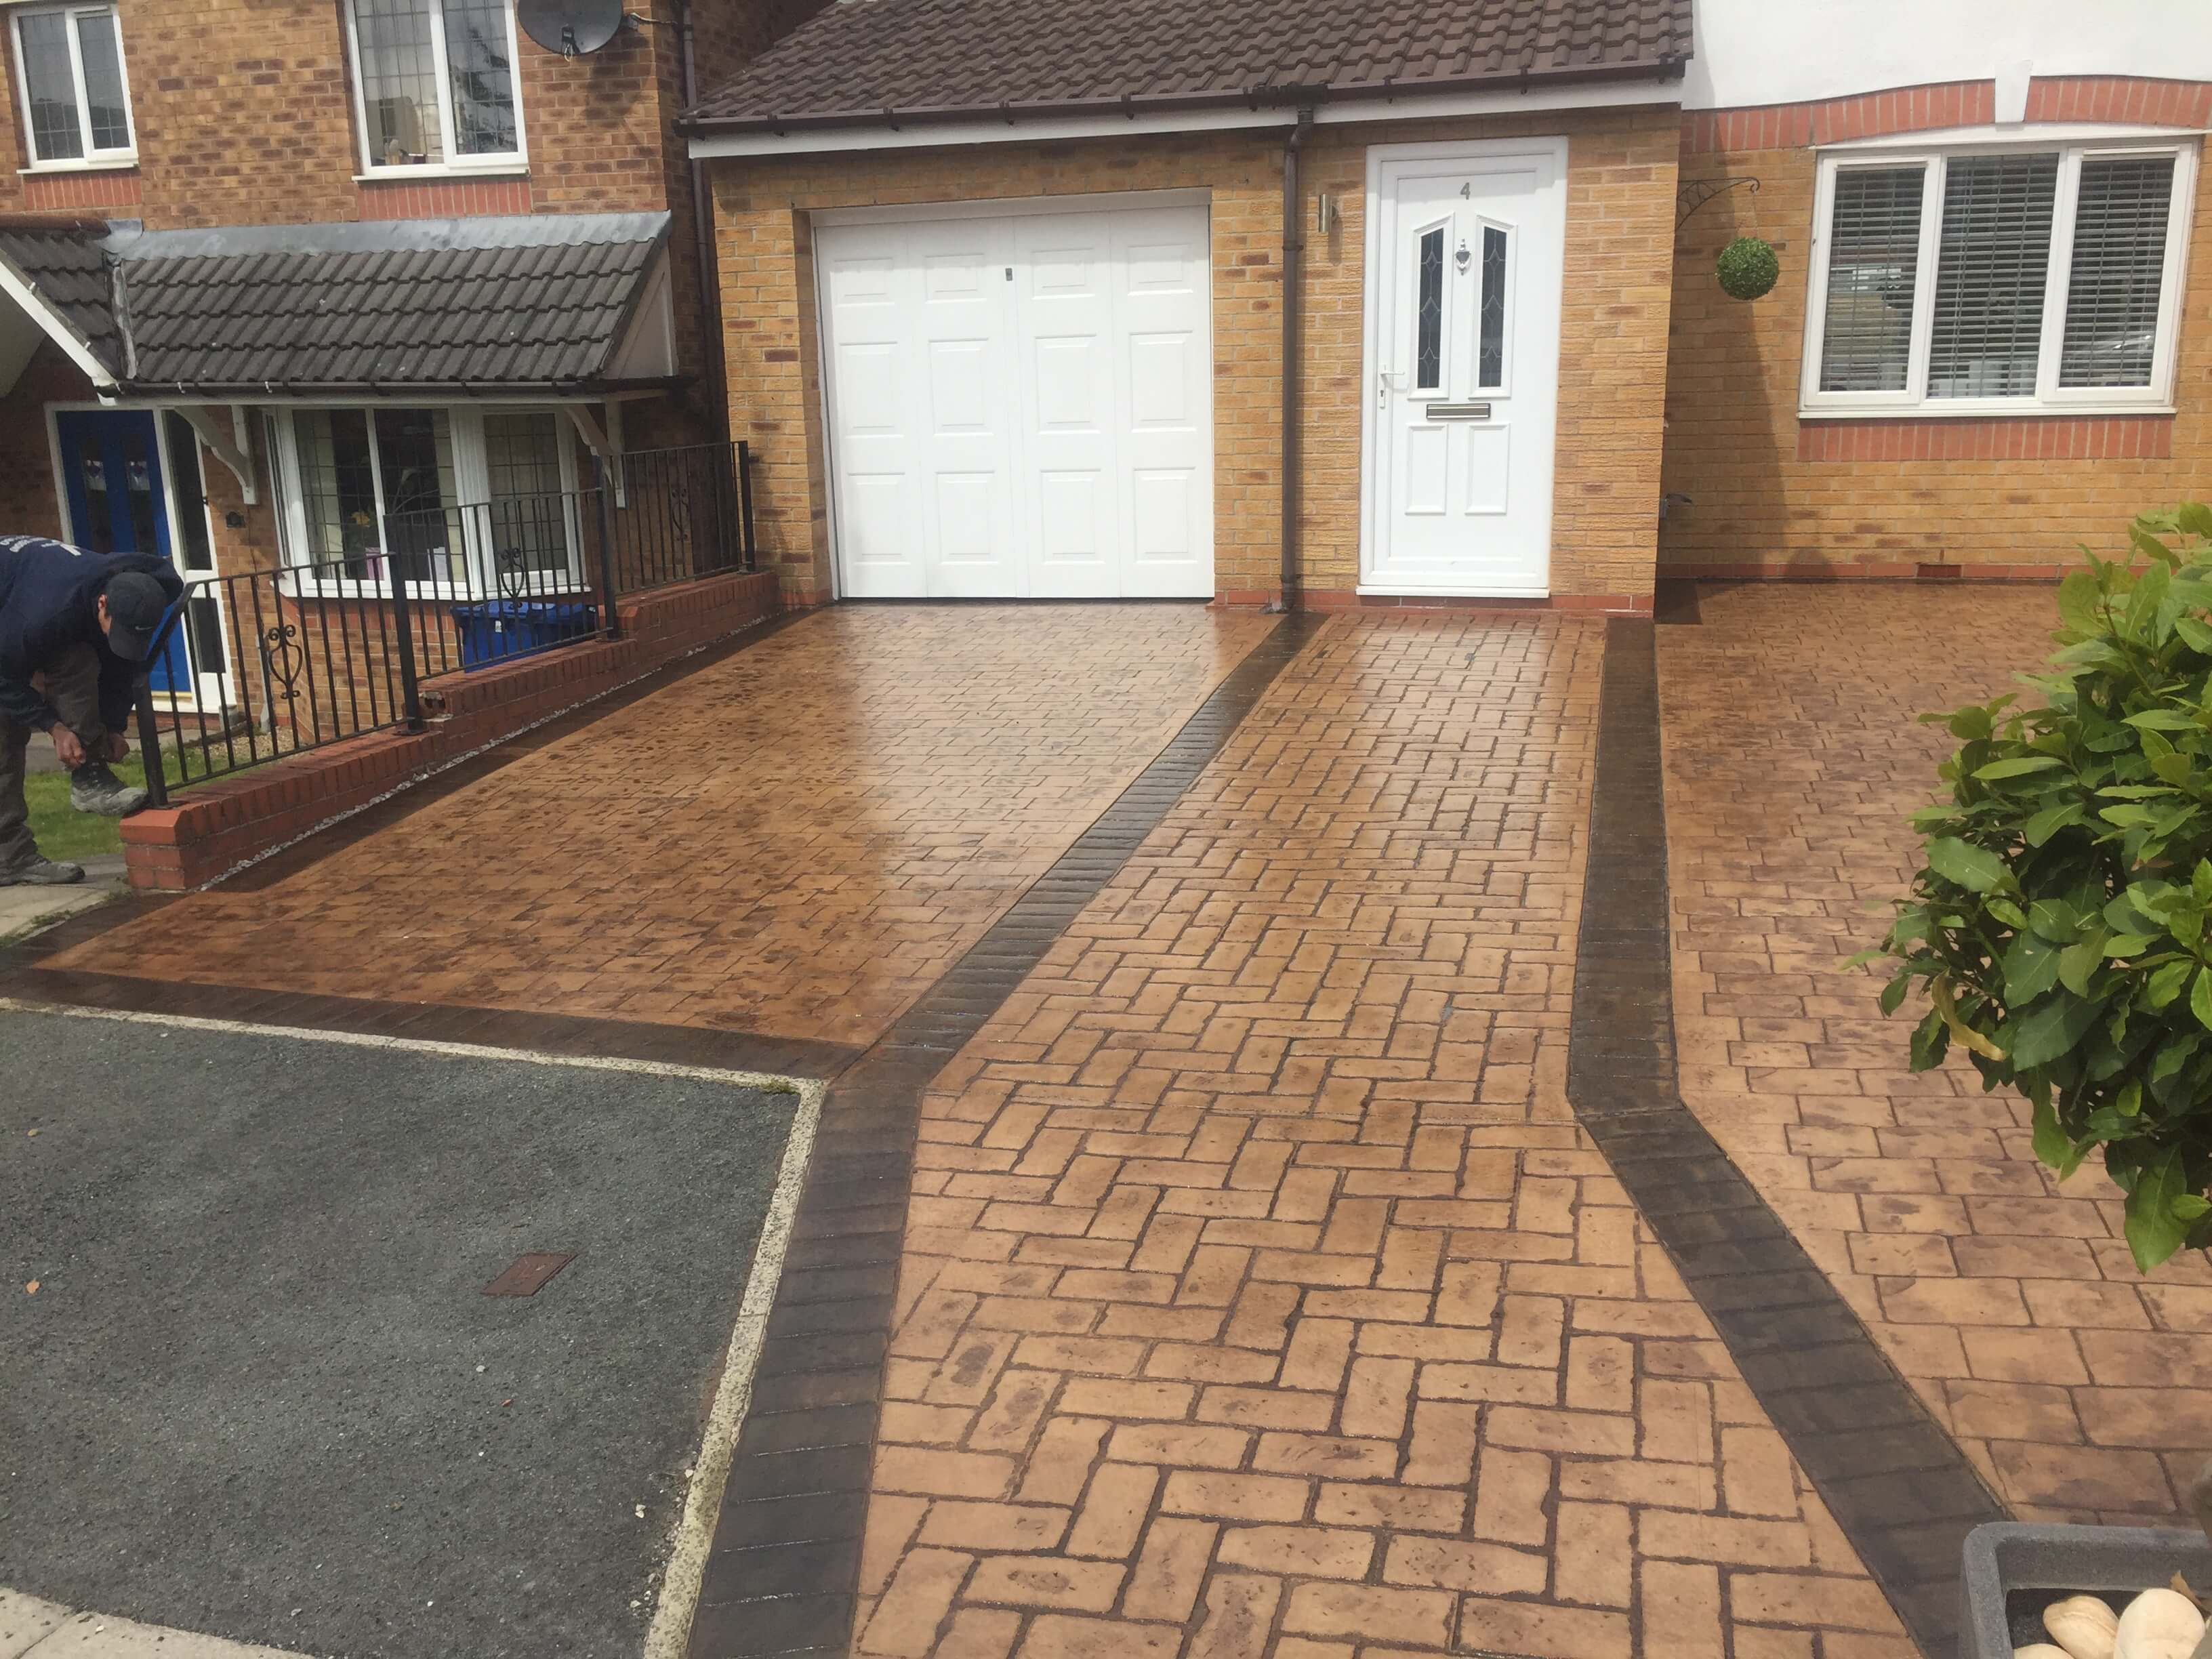 Driveway ideas the different types of driveways for New driveway ideas